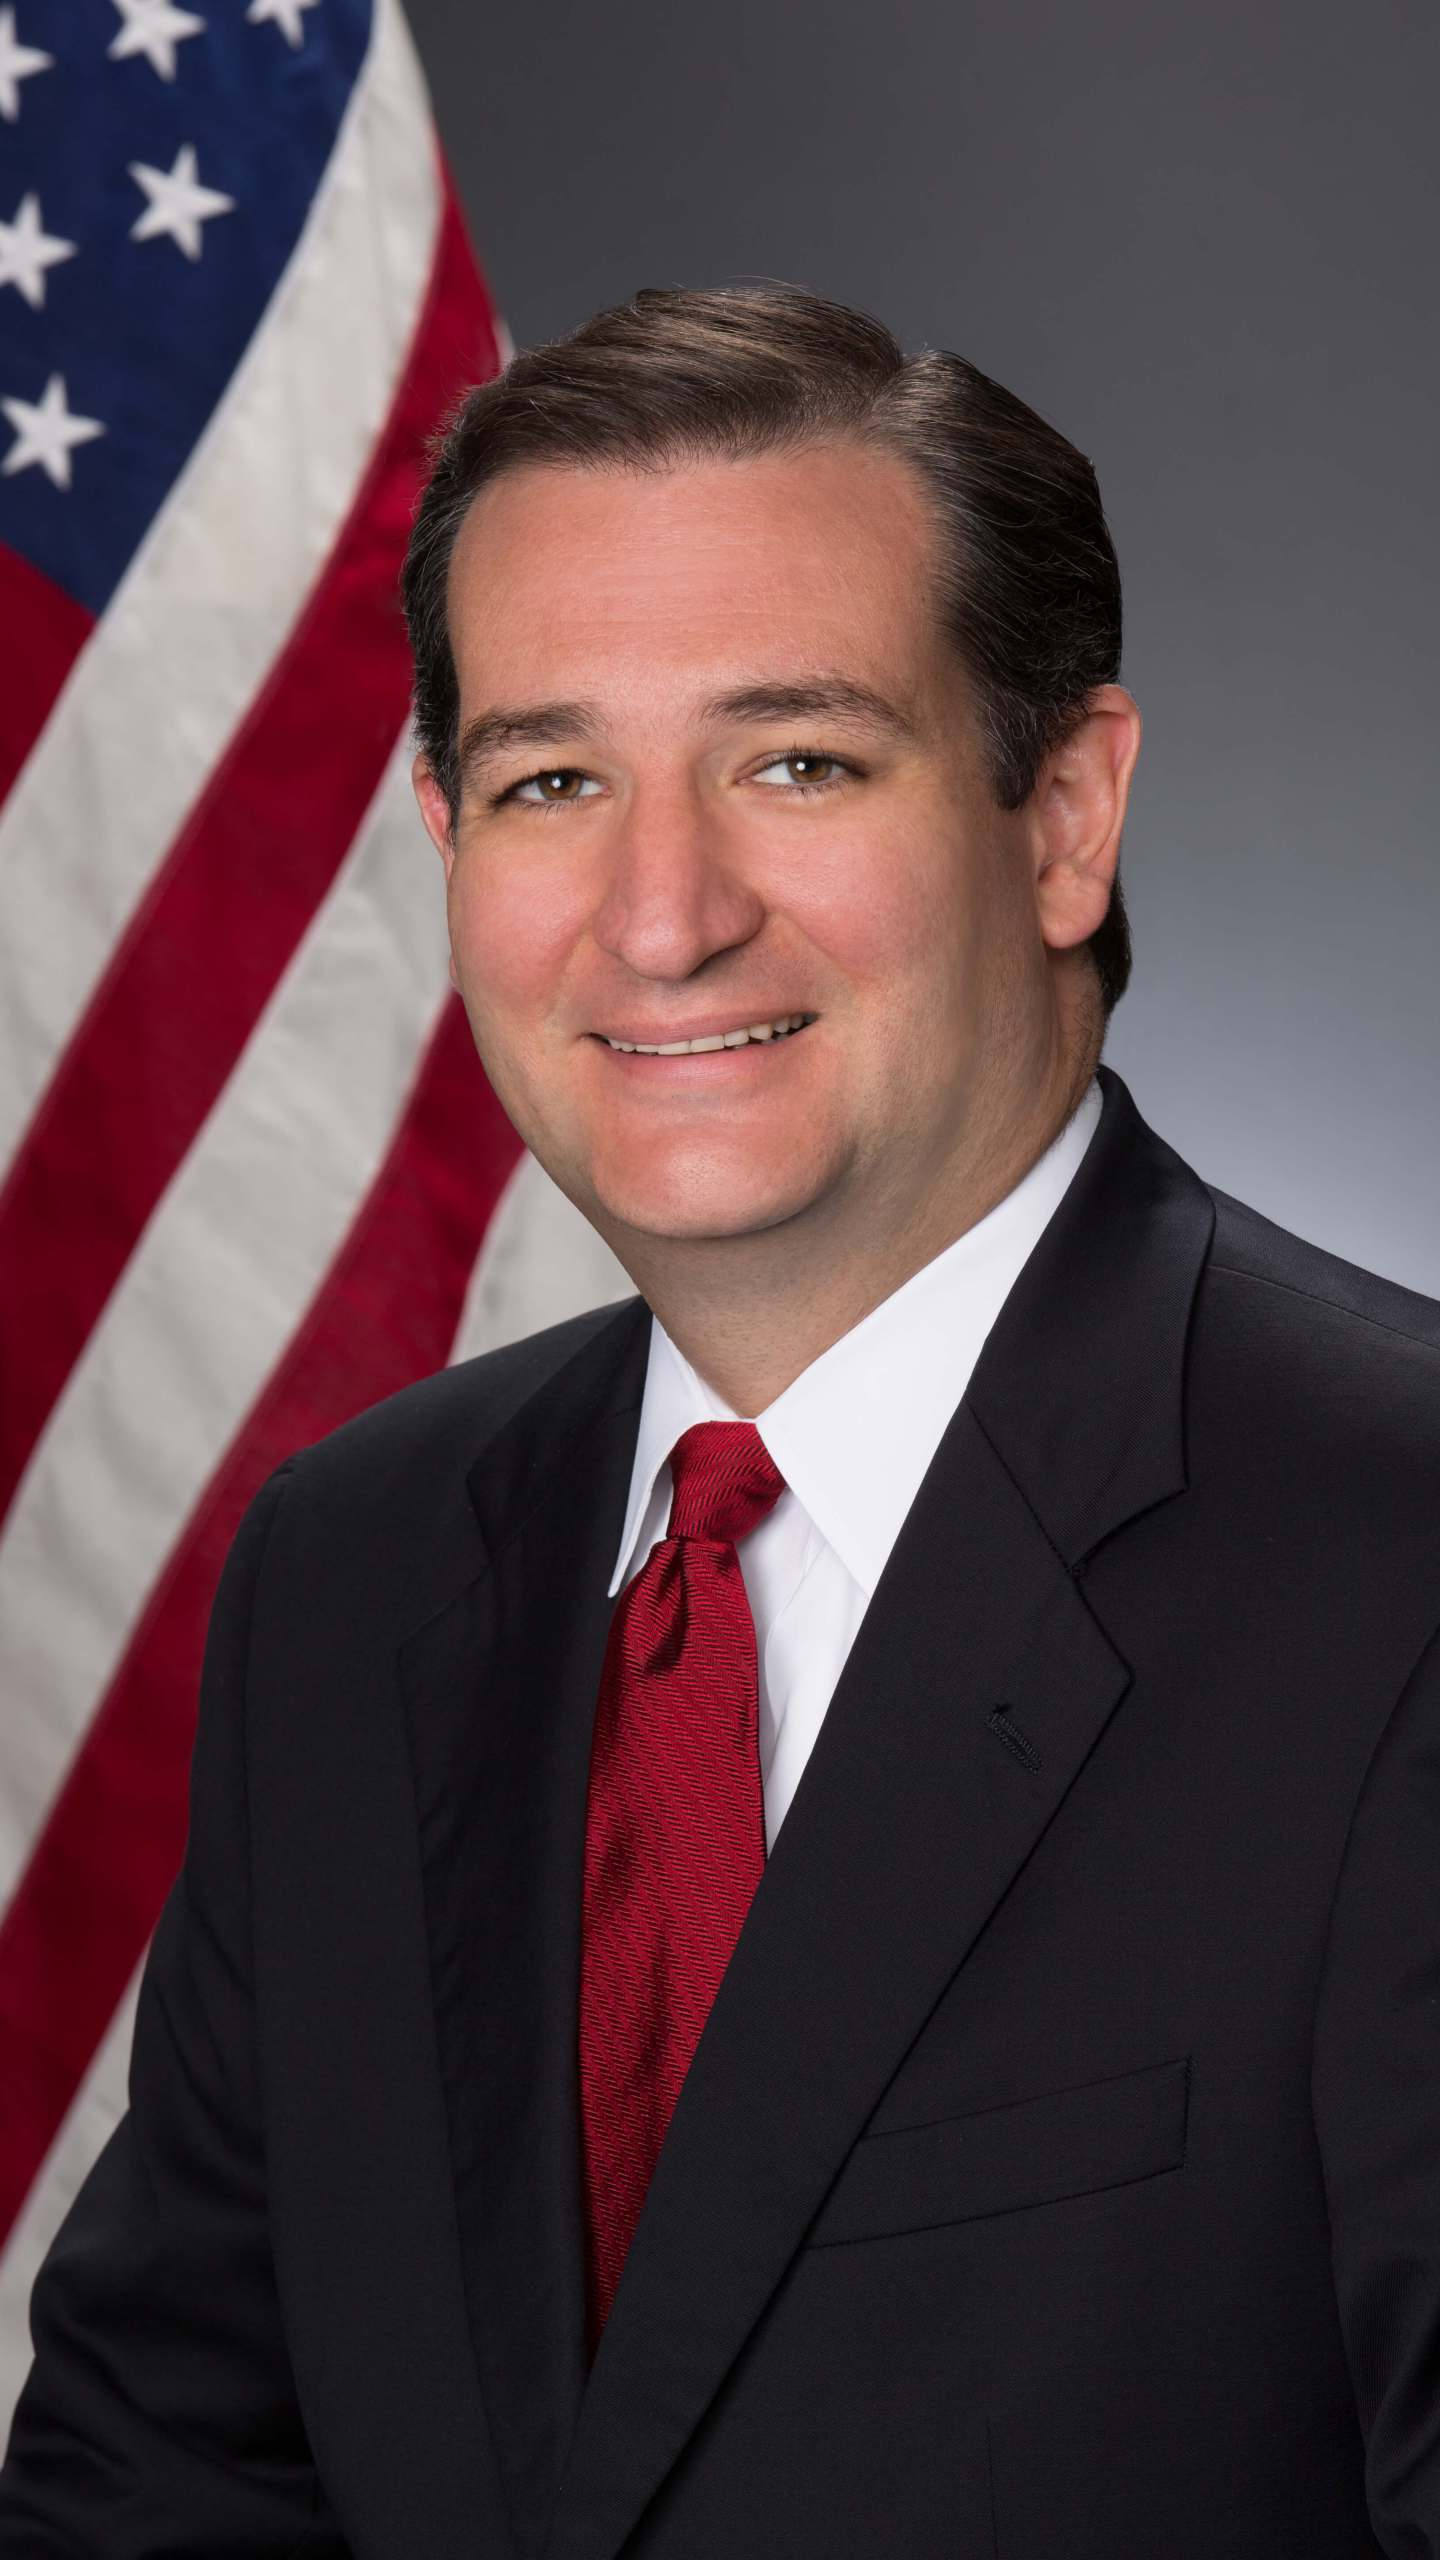 Ted Cruz Election 16 Page MAIN_137157